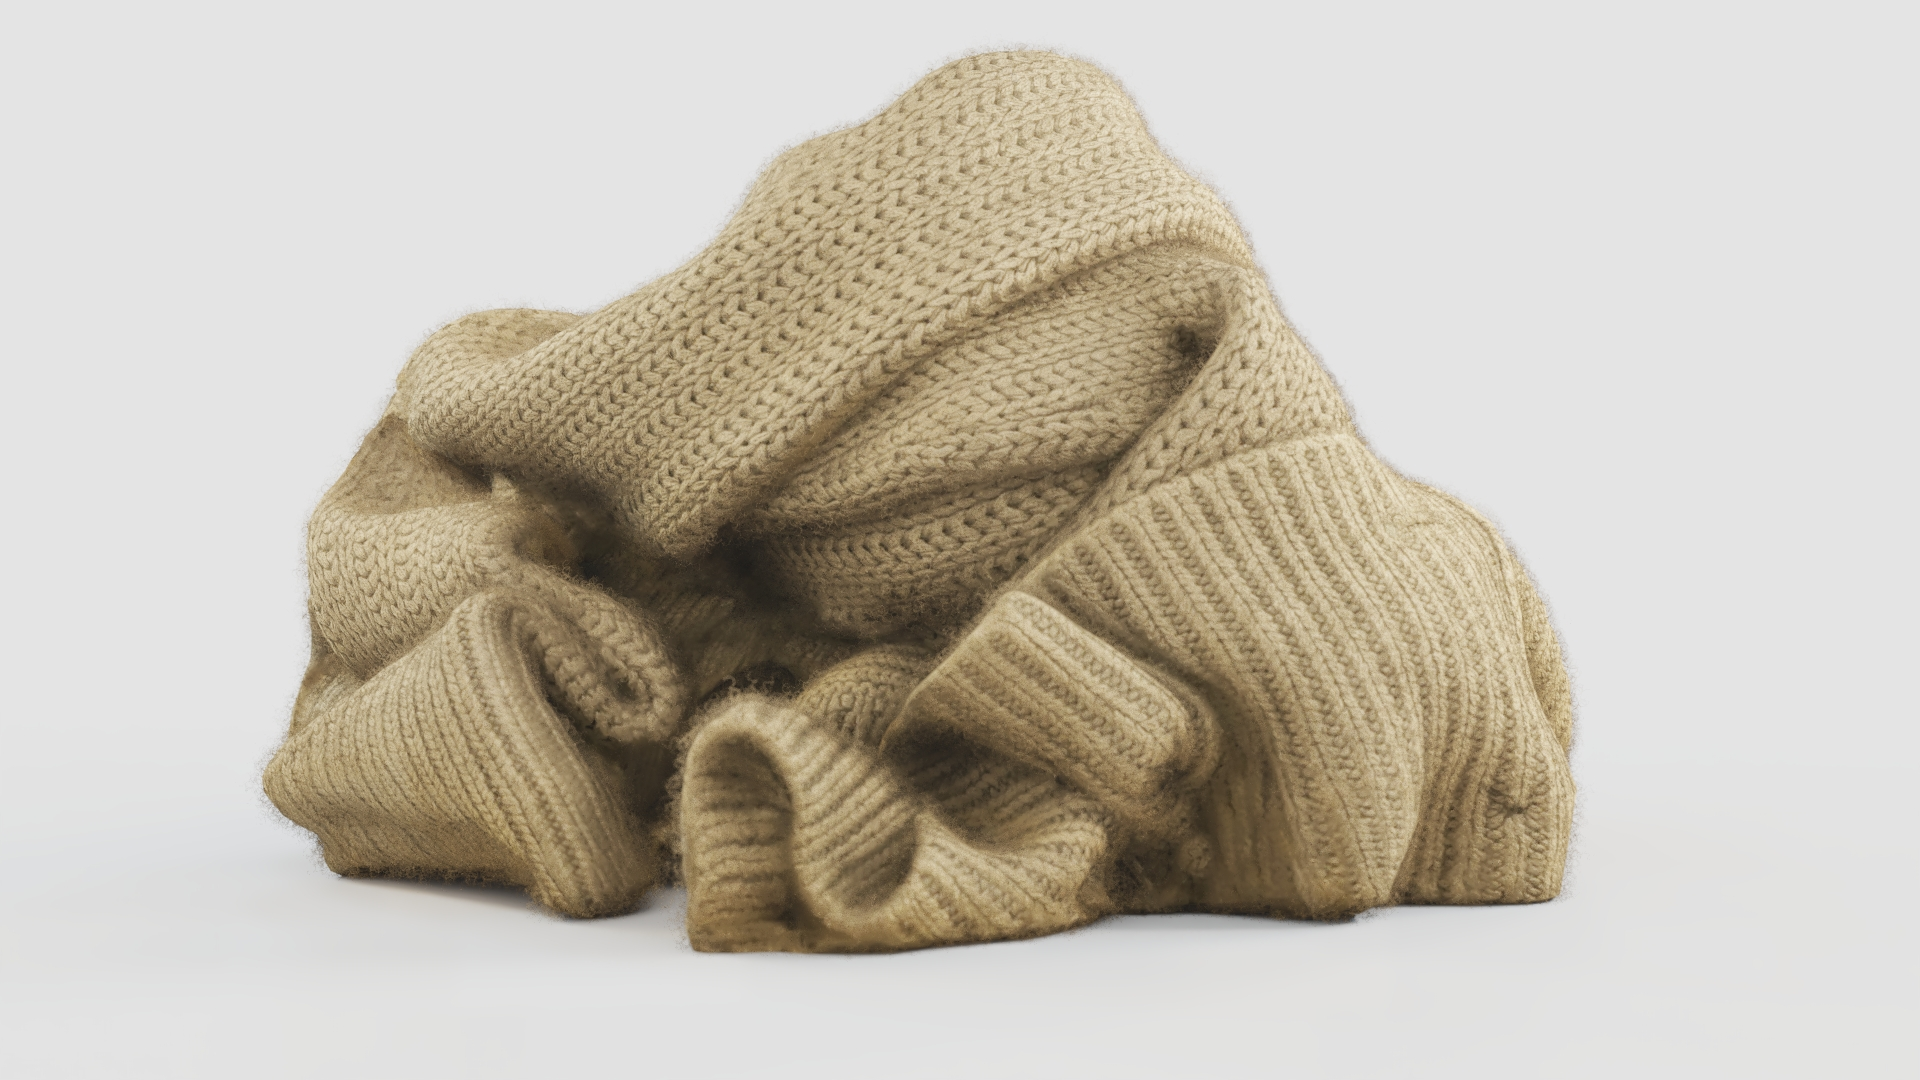 3D Scanned Sweater